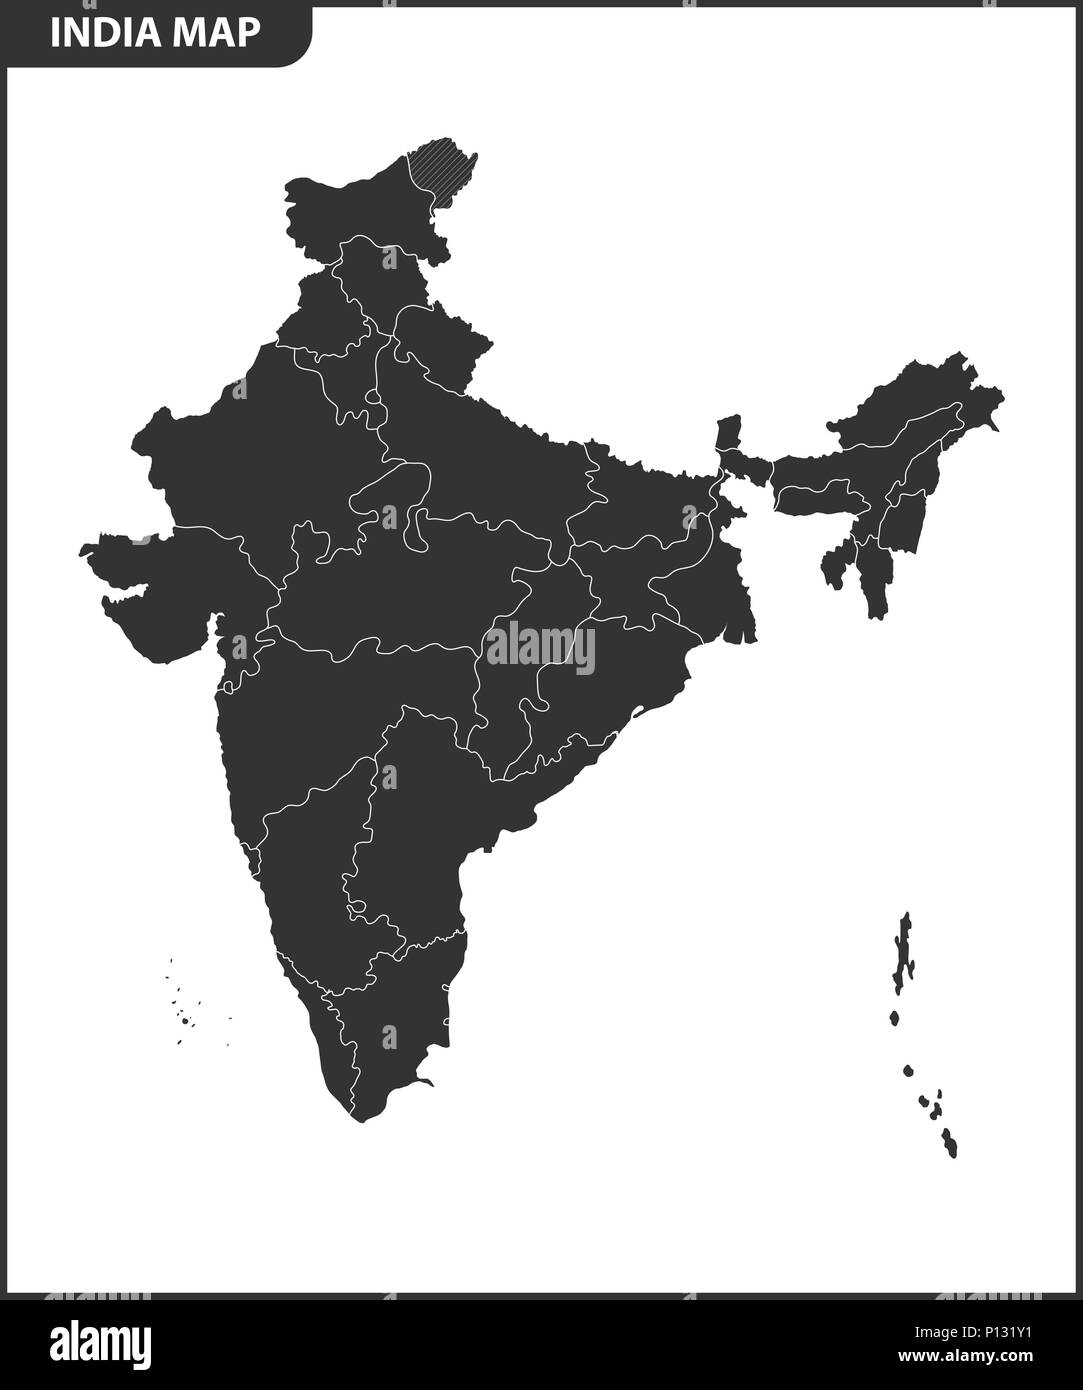 The detailed map of the India with regions or states. Administrative division. - Stock Vector